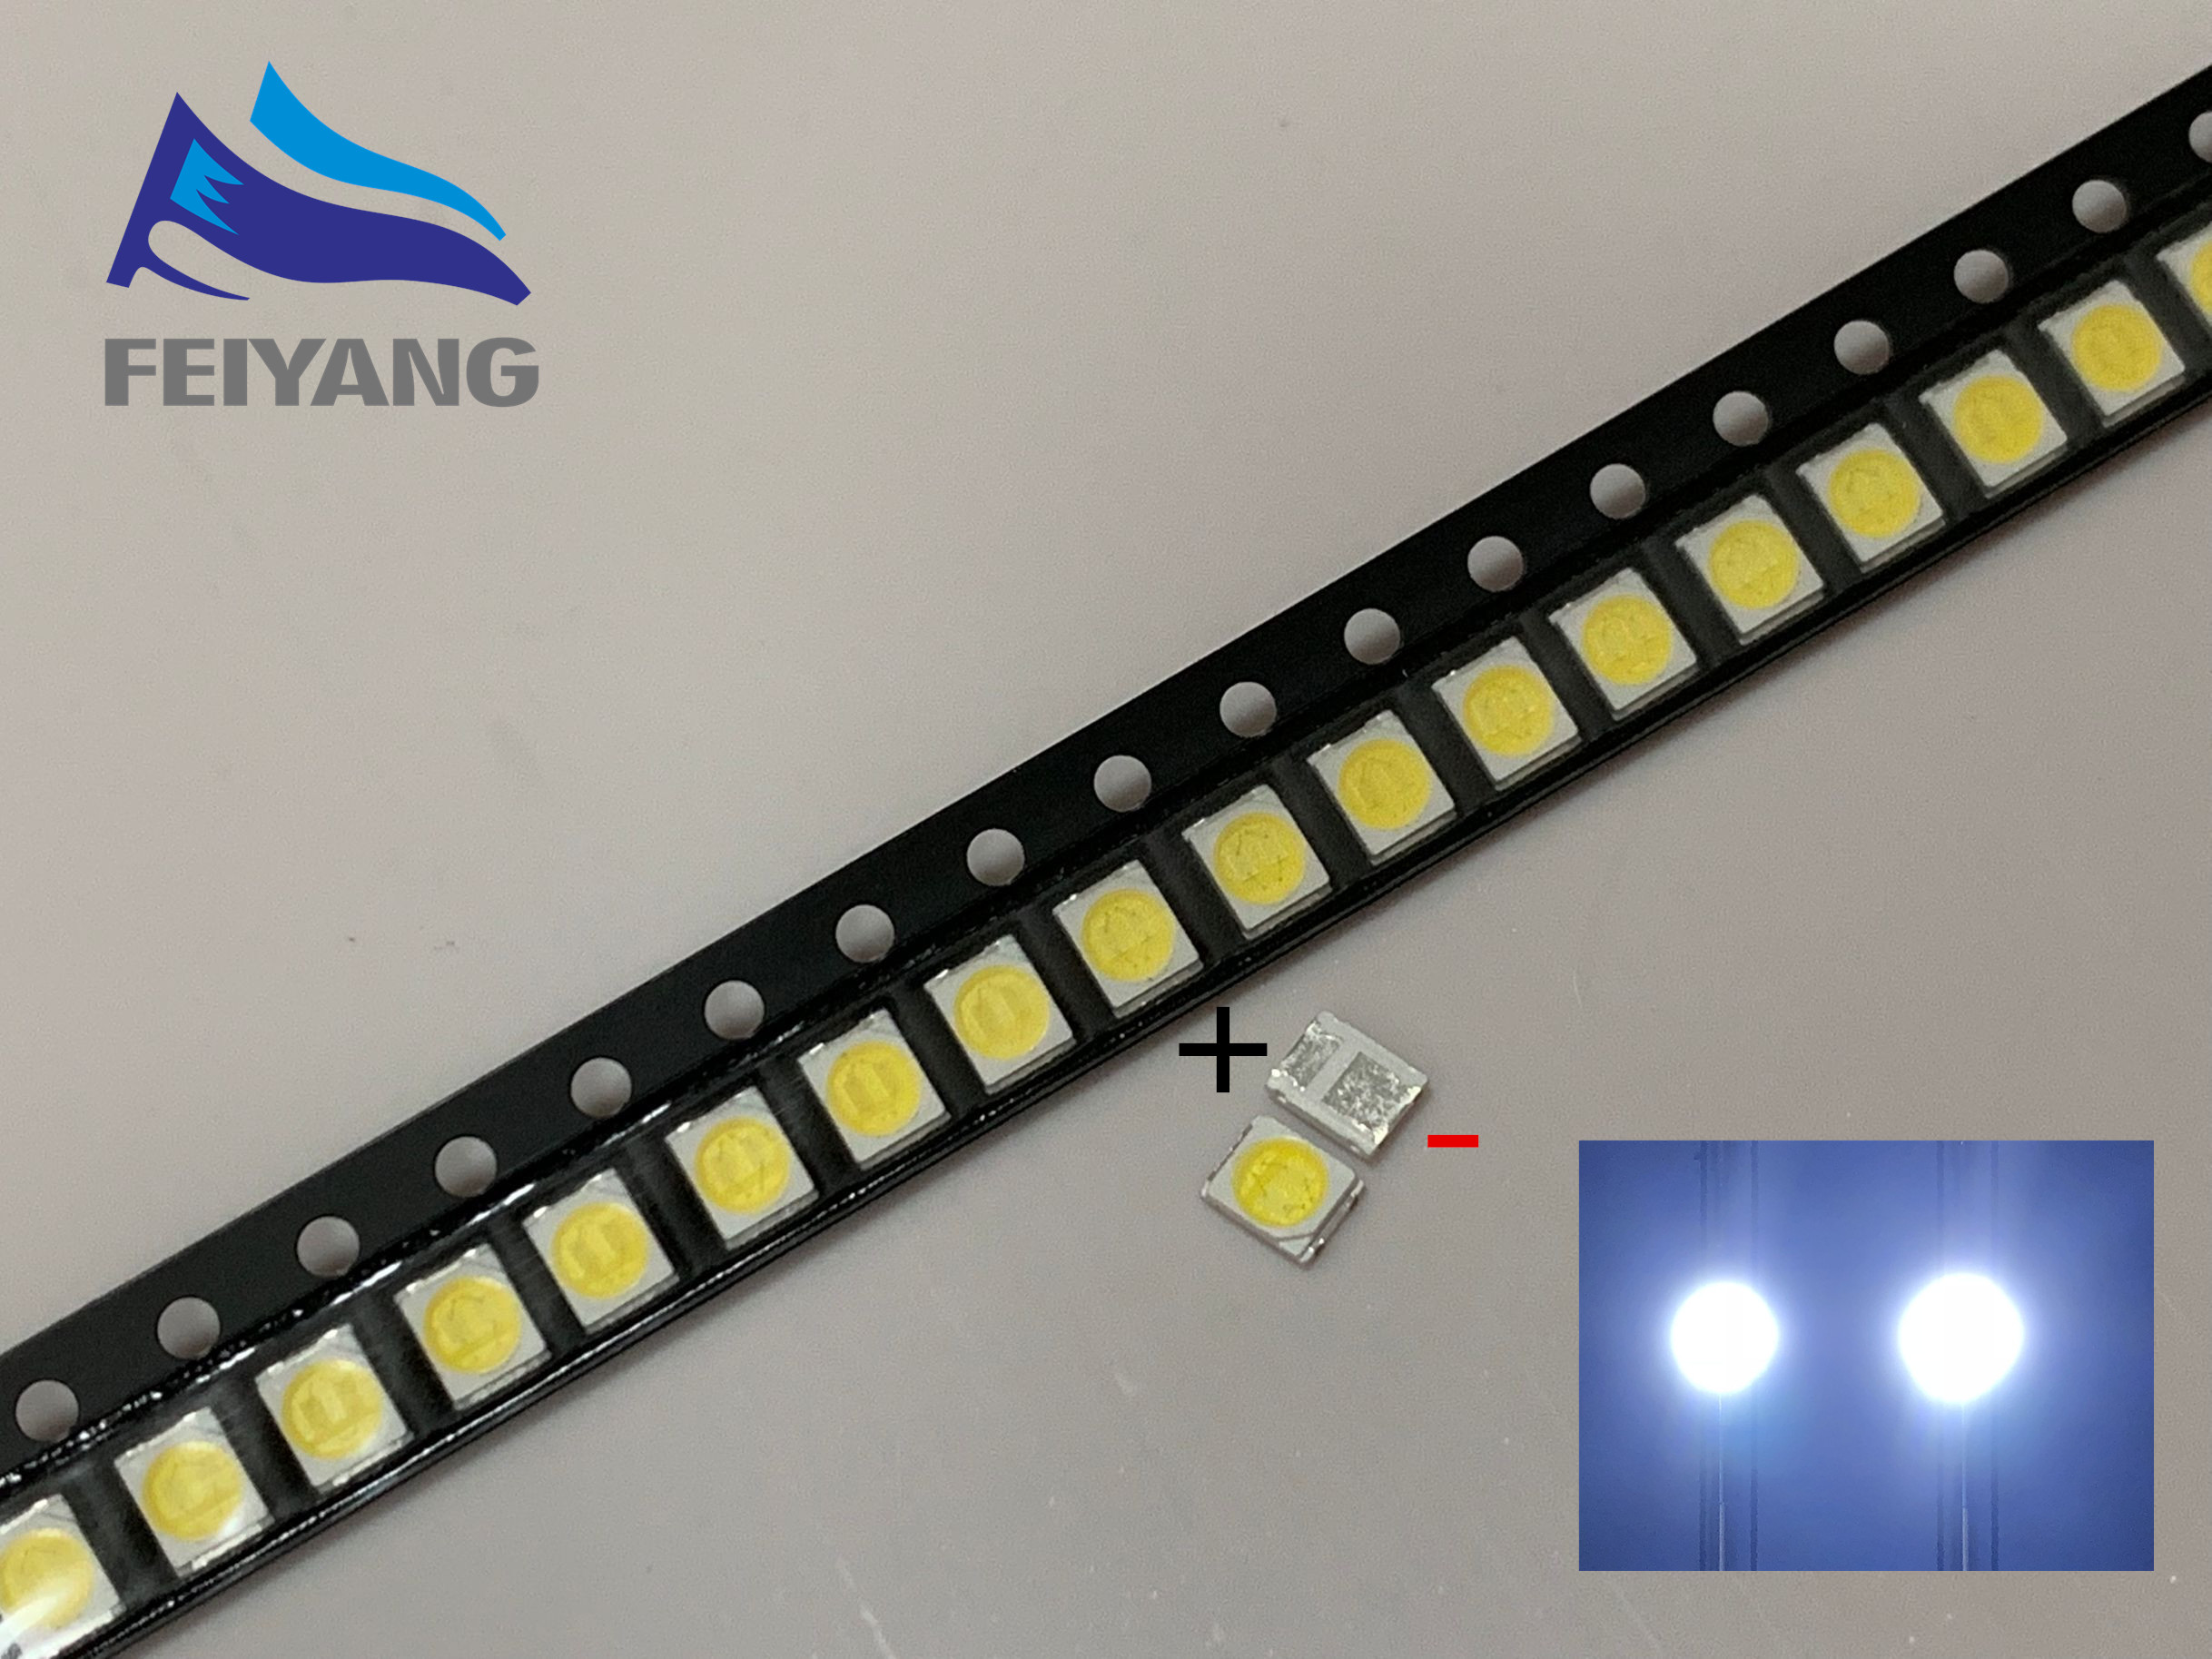 50PCS Original LEXTAR <font><b>2835</b></font> 3528 1210 3V 1w-2W <font><b>SMD</b></font> <font><b>LED</b></font> For Repair TV Backlight Cold white LCD Backlight <font><b>LED</b></font> image